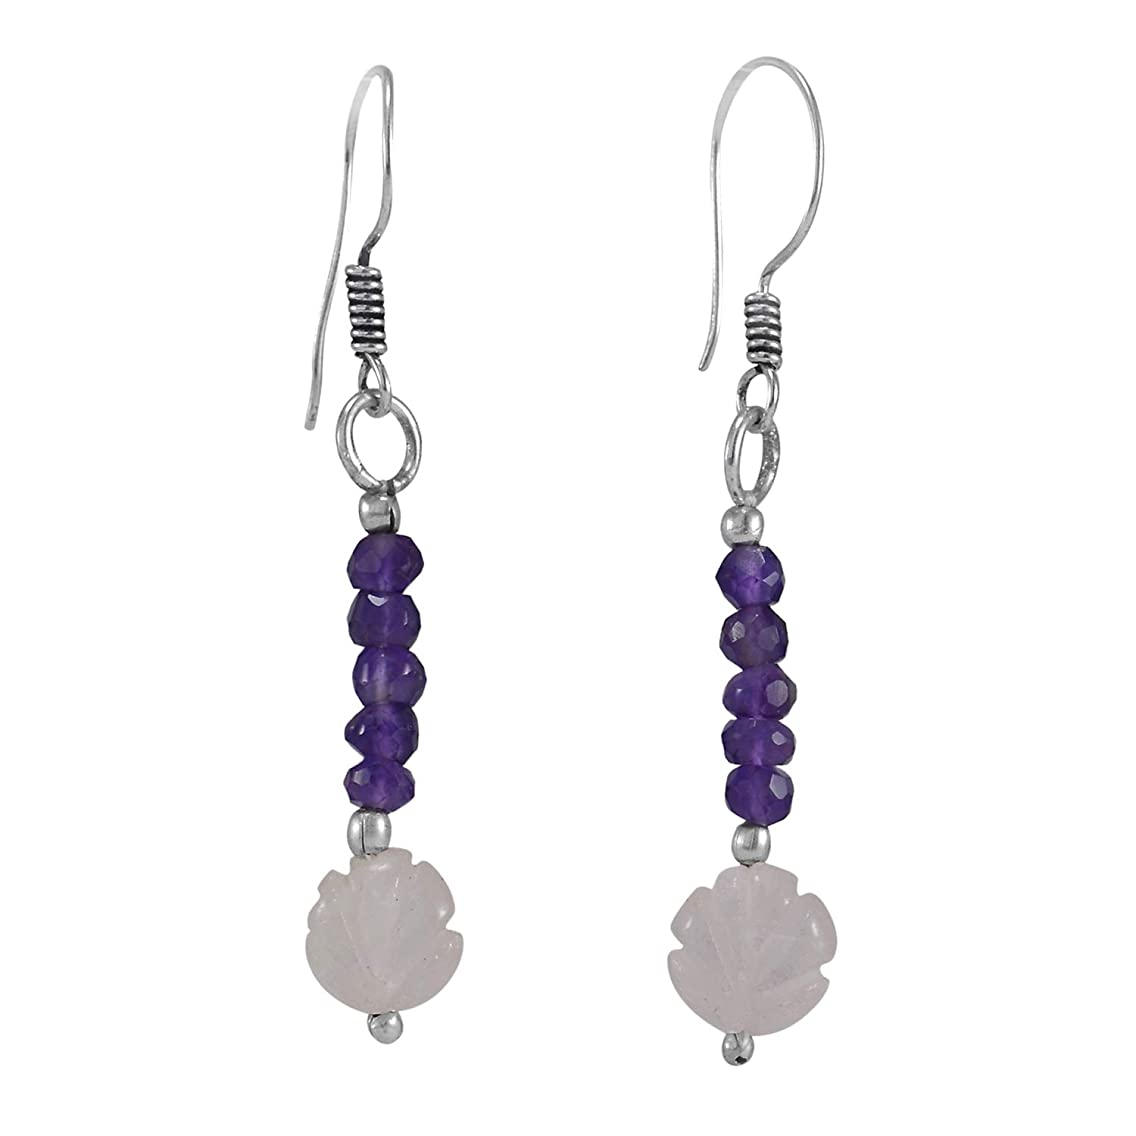 Handmade Jewelry Manufacturer 925 Silver Plated, Round Amethyst Beads, Hand-carved Rose Quartz Simple Earring Jaipur Rajasthan India